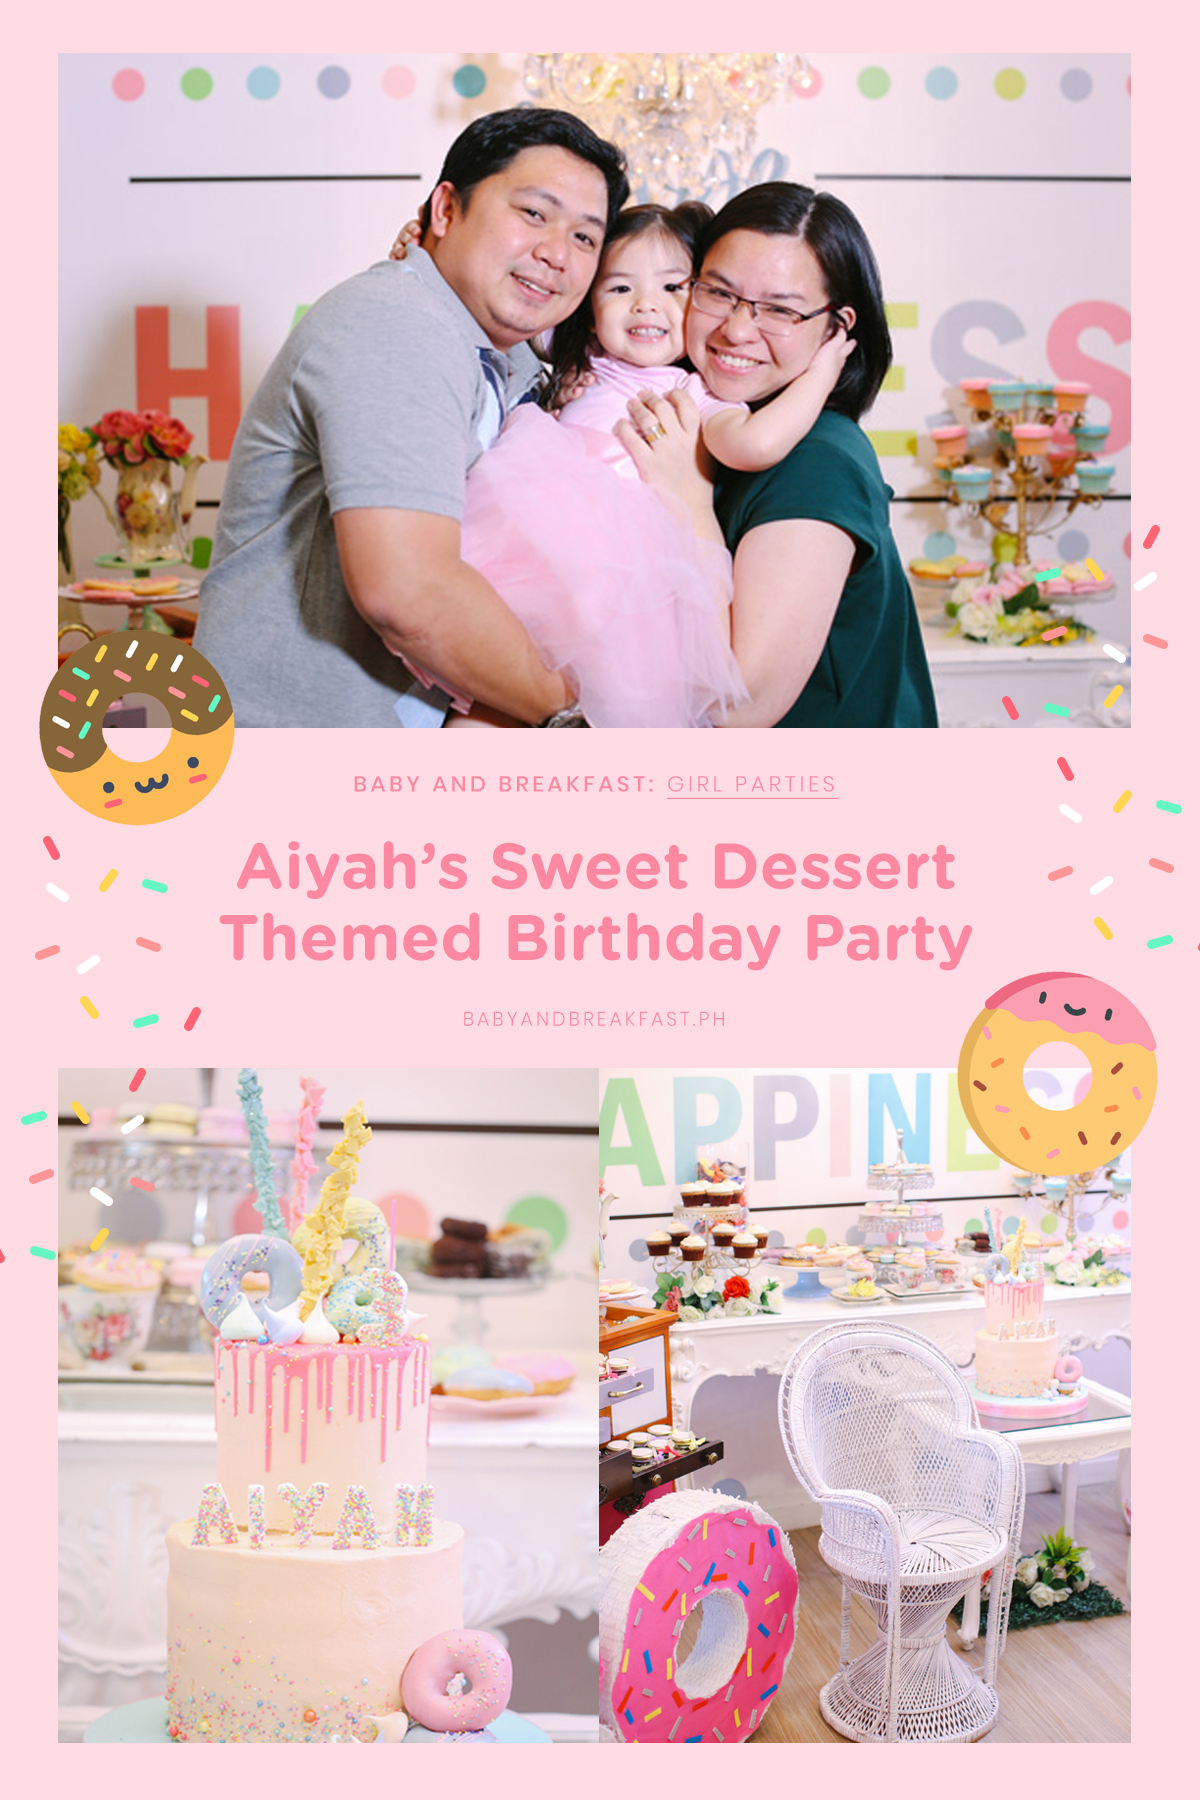 Baby and Breakfast: Girl Parties Aiyah's Sweet Dessert Themed Birthday Party